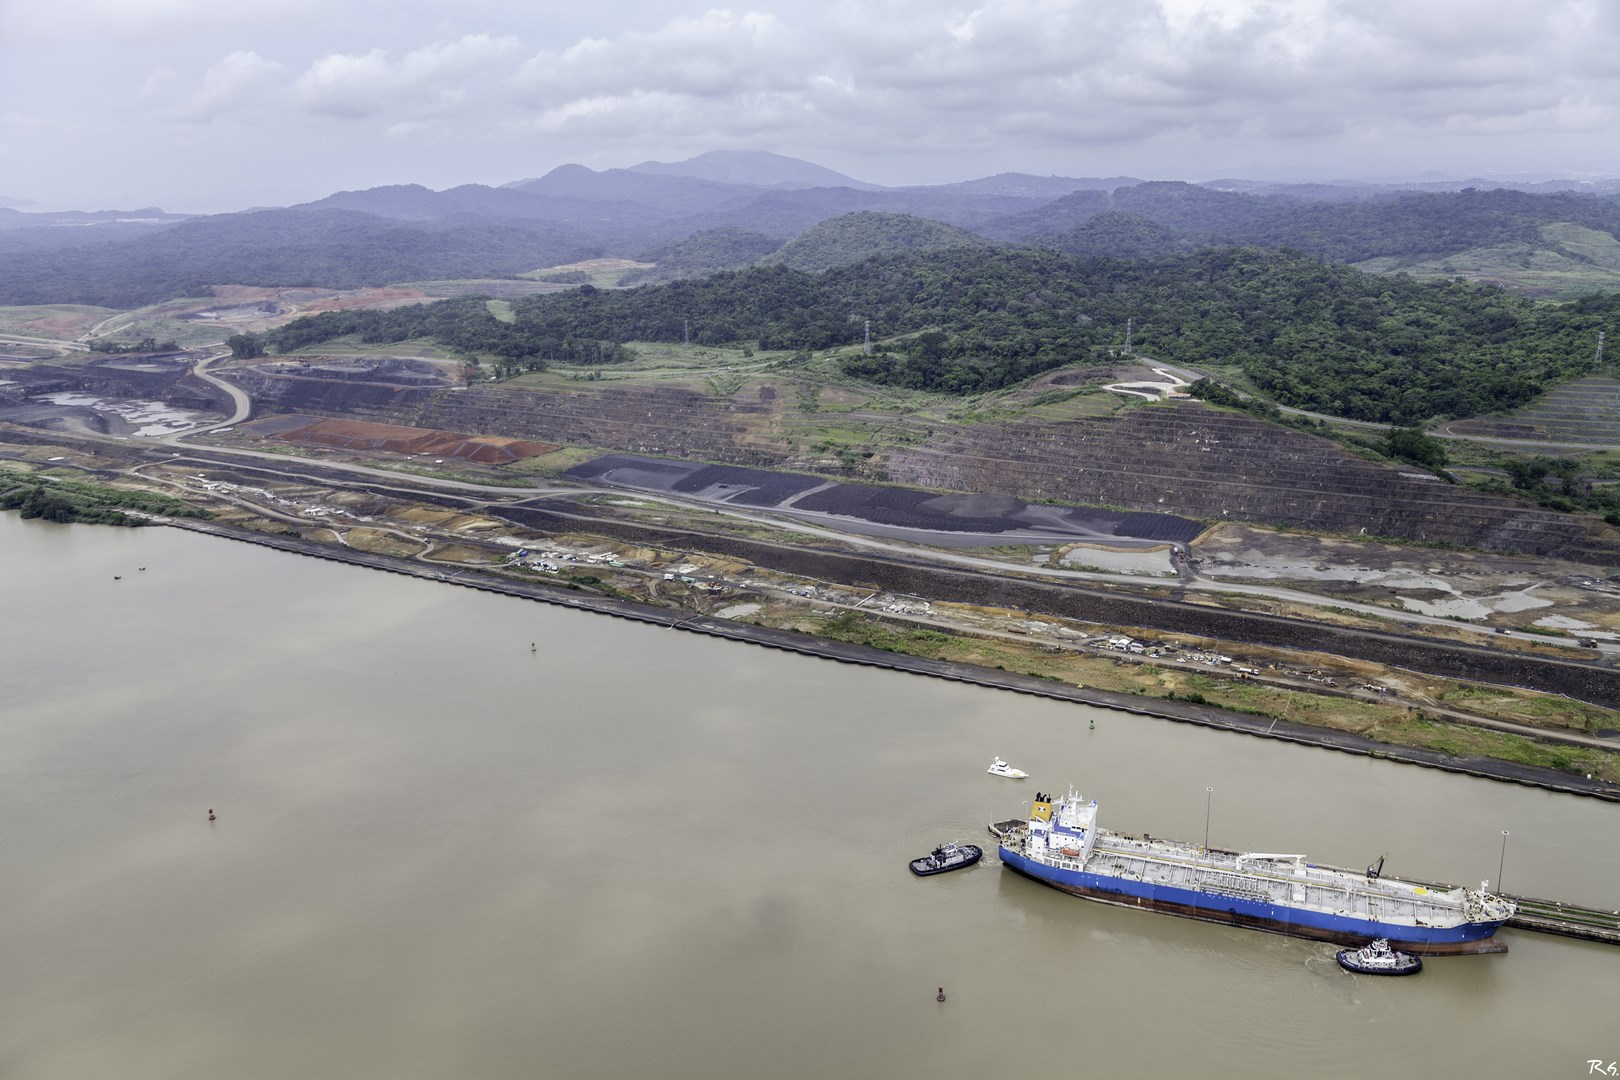 Panamá Canal works - aerial view